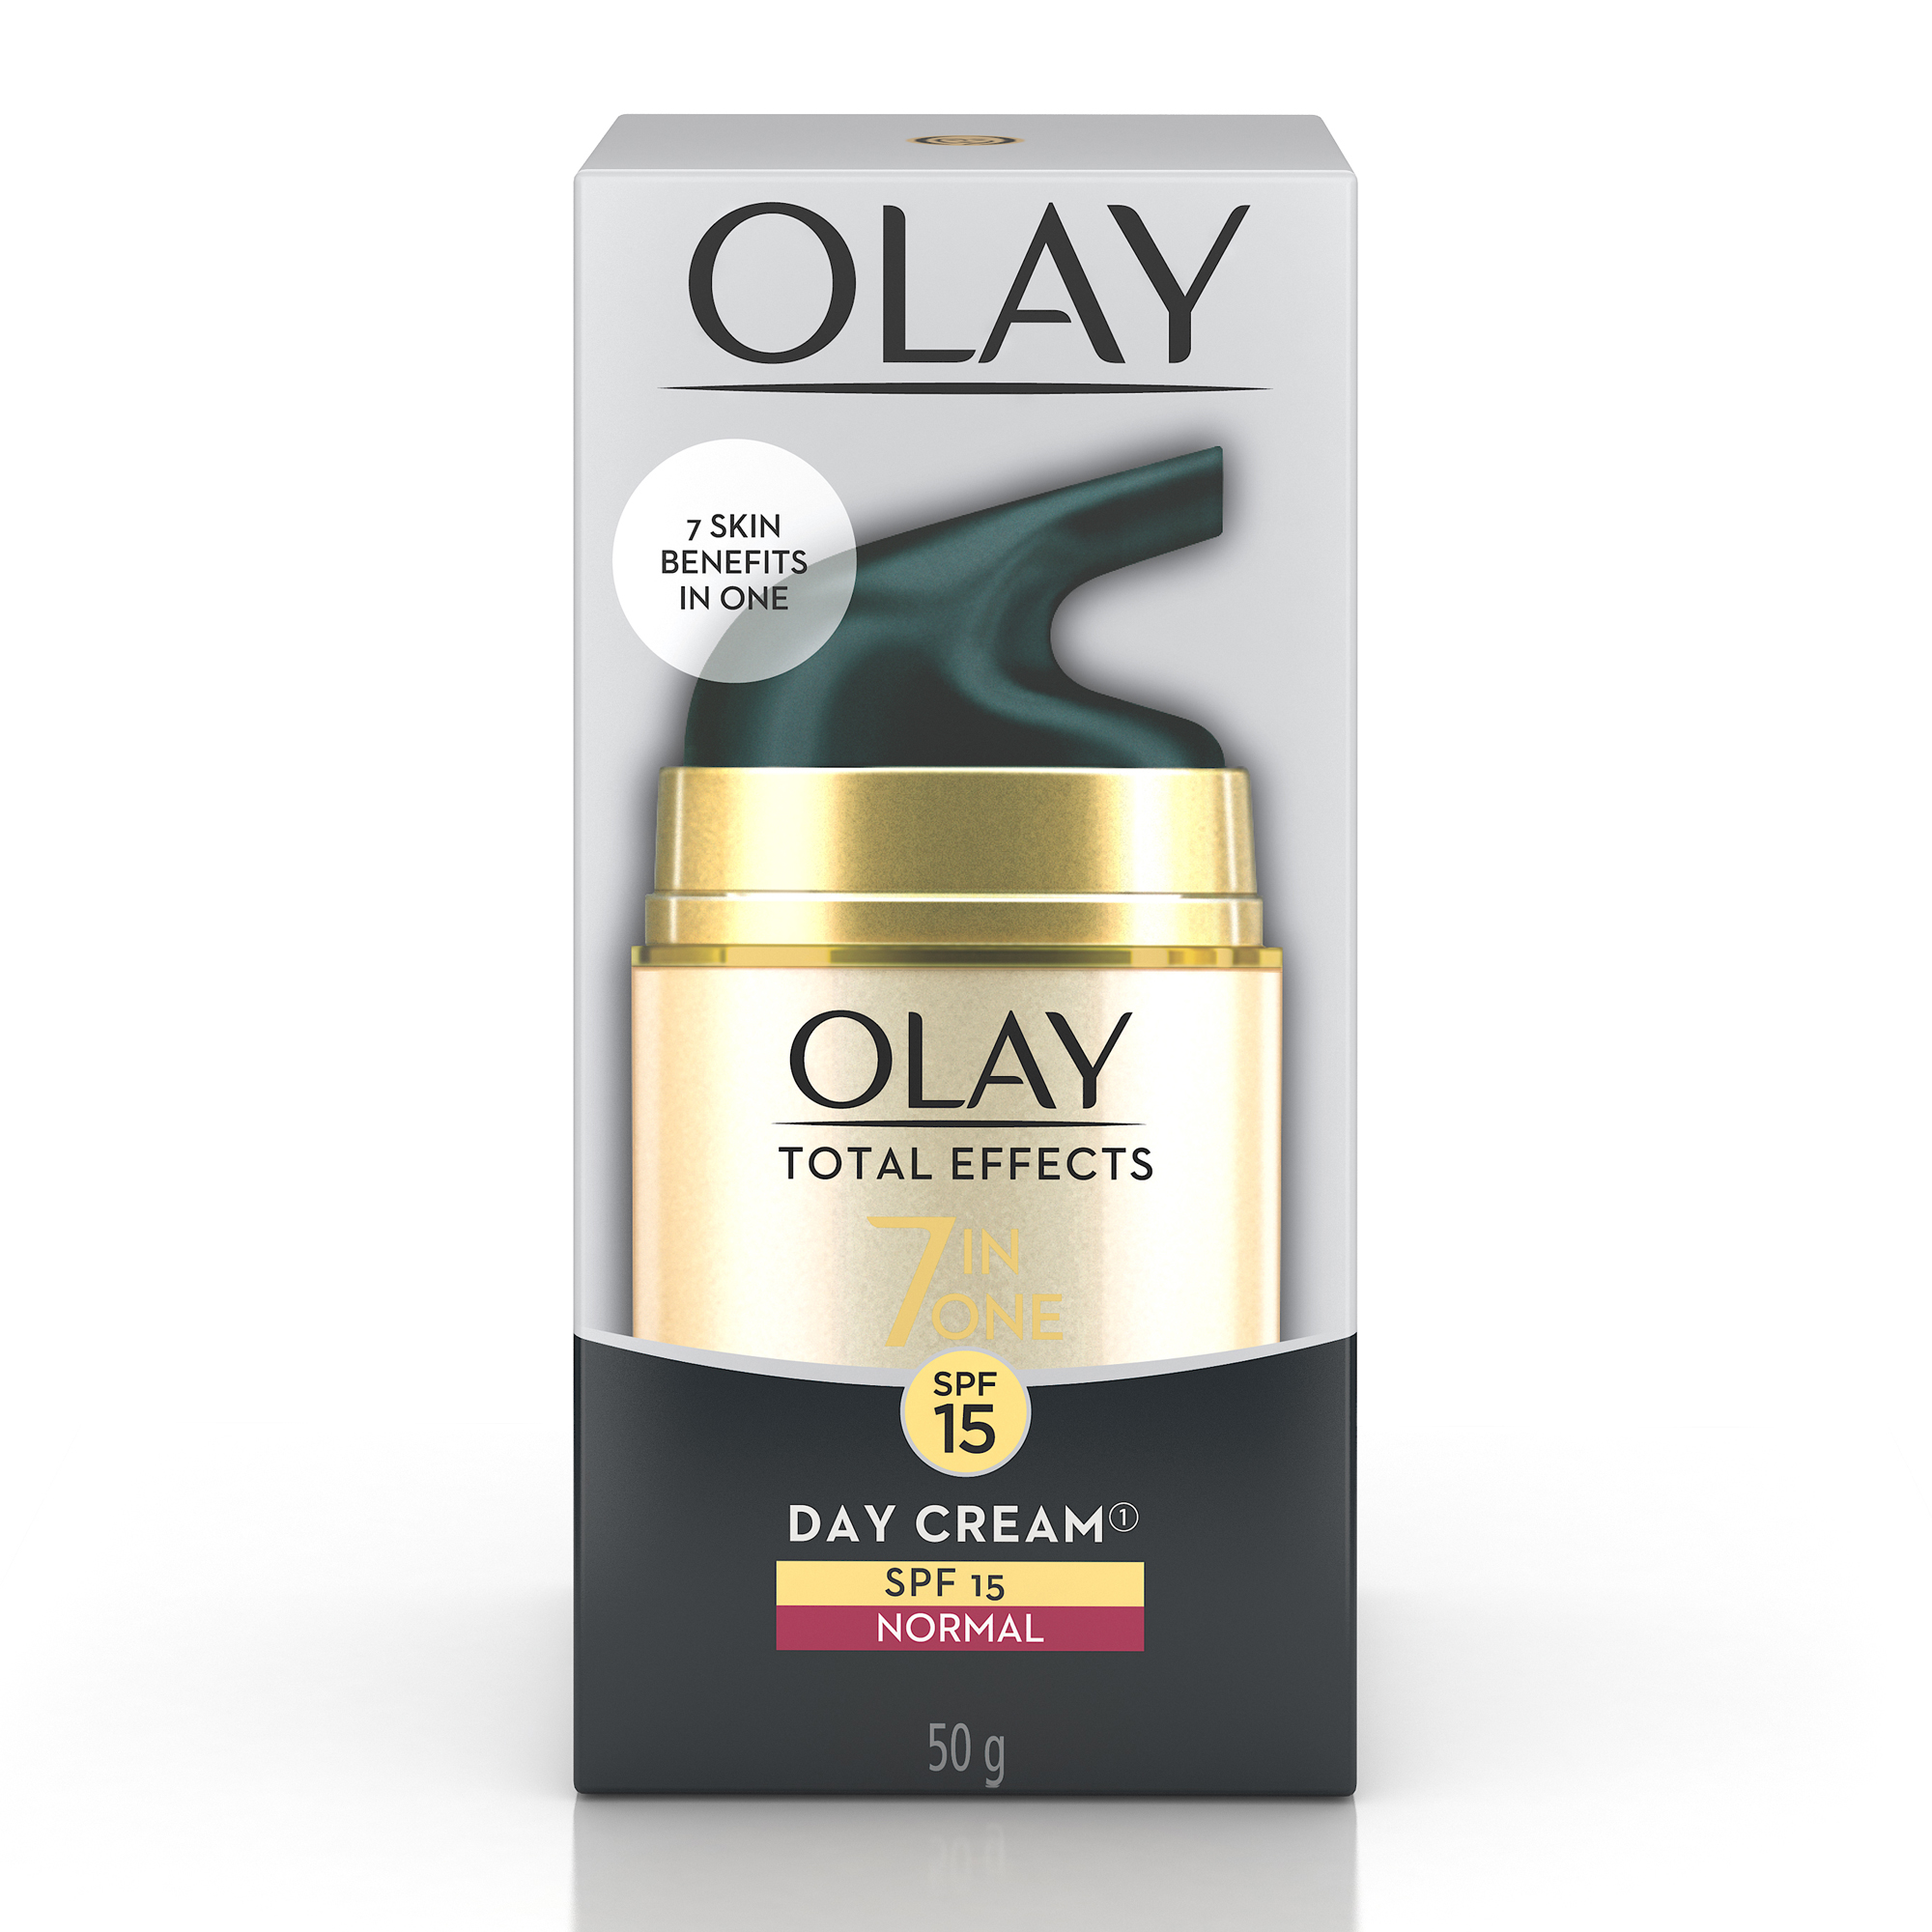 Olay Total Effects SPF Cream 50g